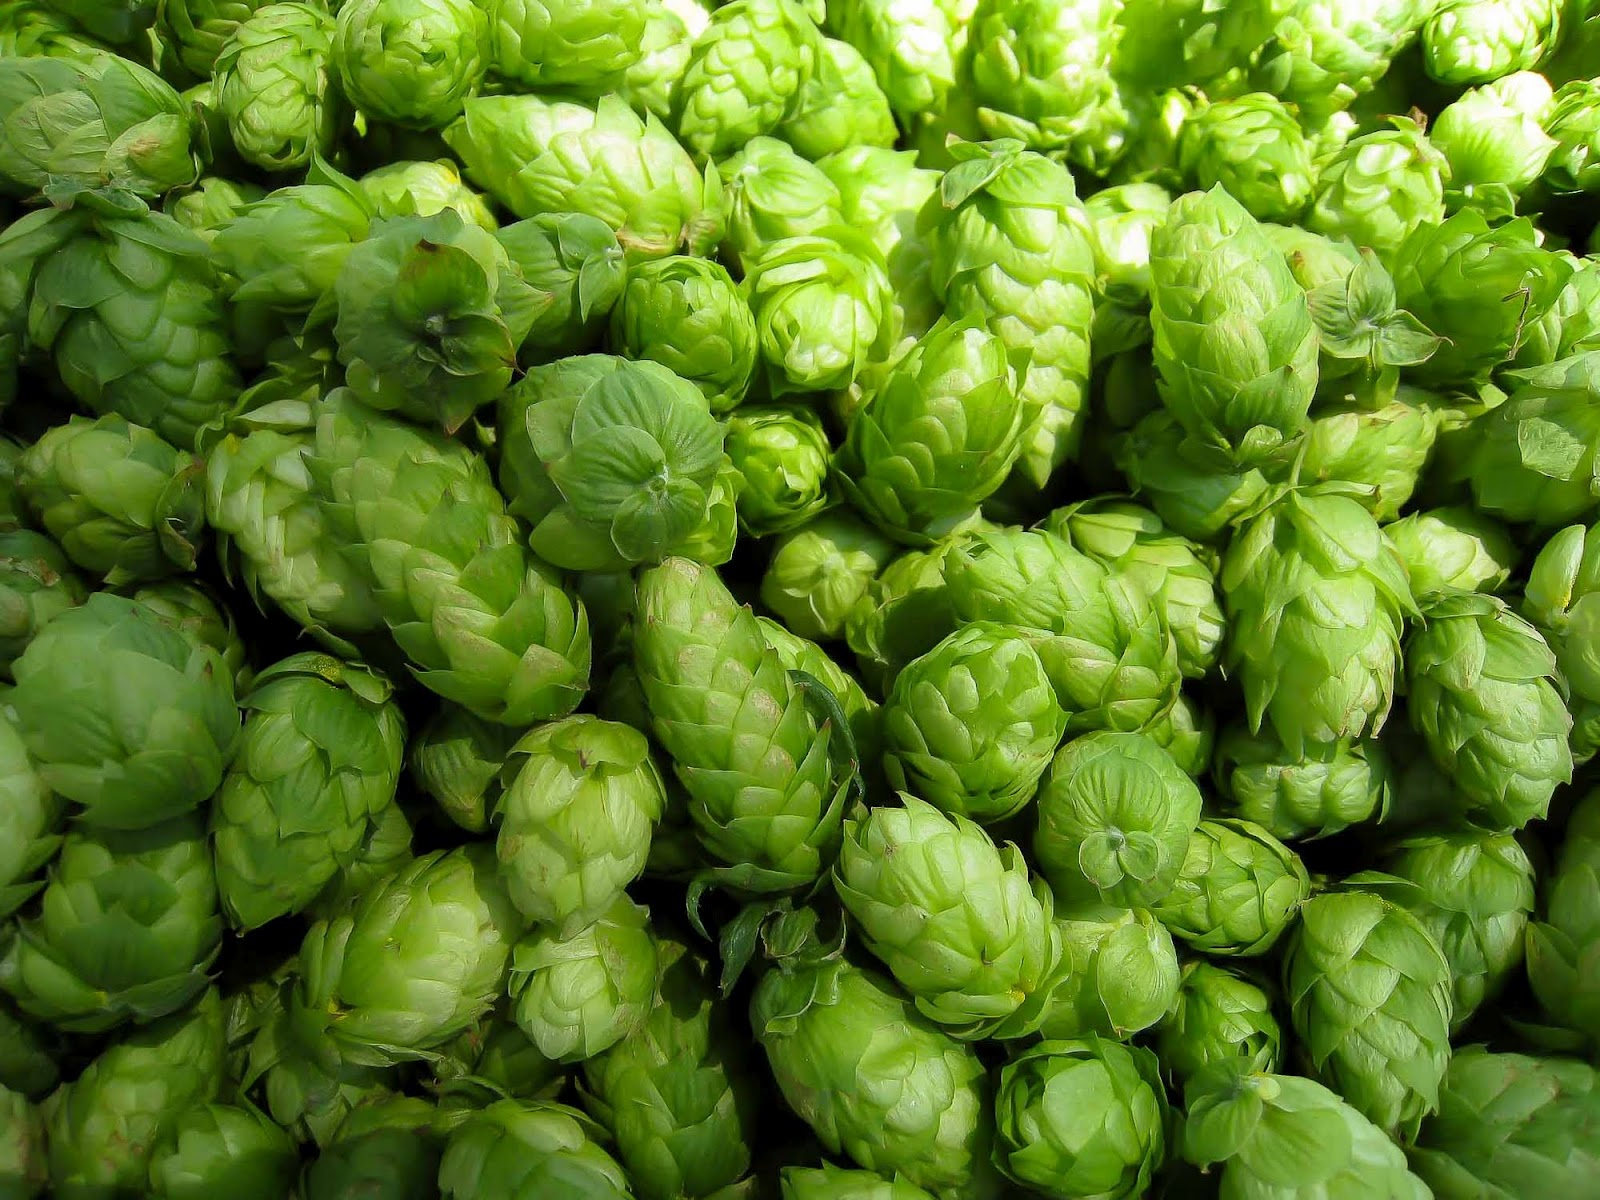 Close-Up-Hops